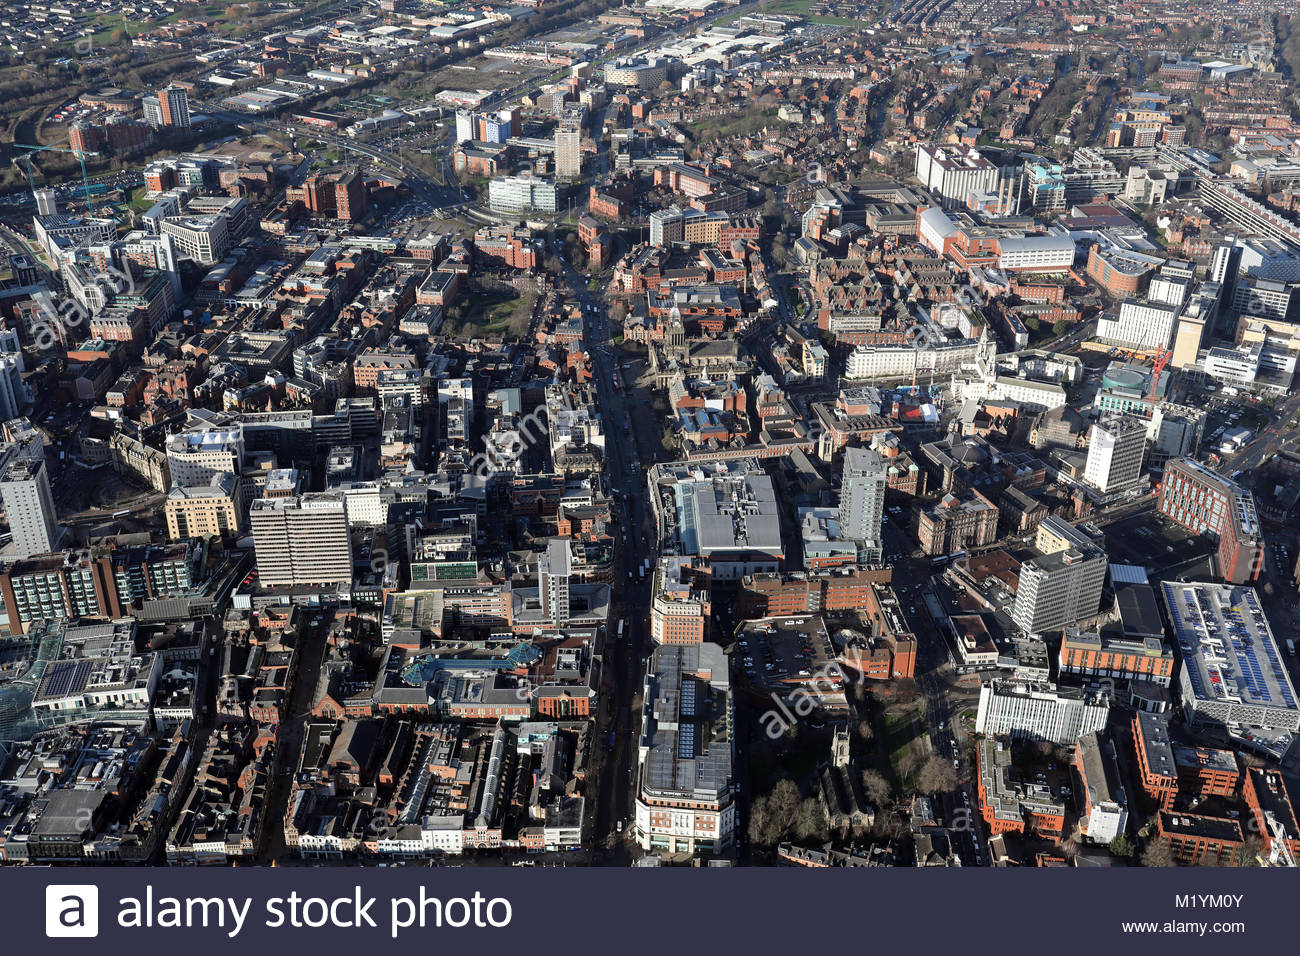 aerial view of Leeds city centre 2018, UK Stock Photo